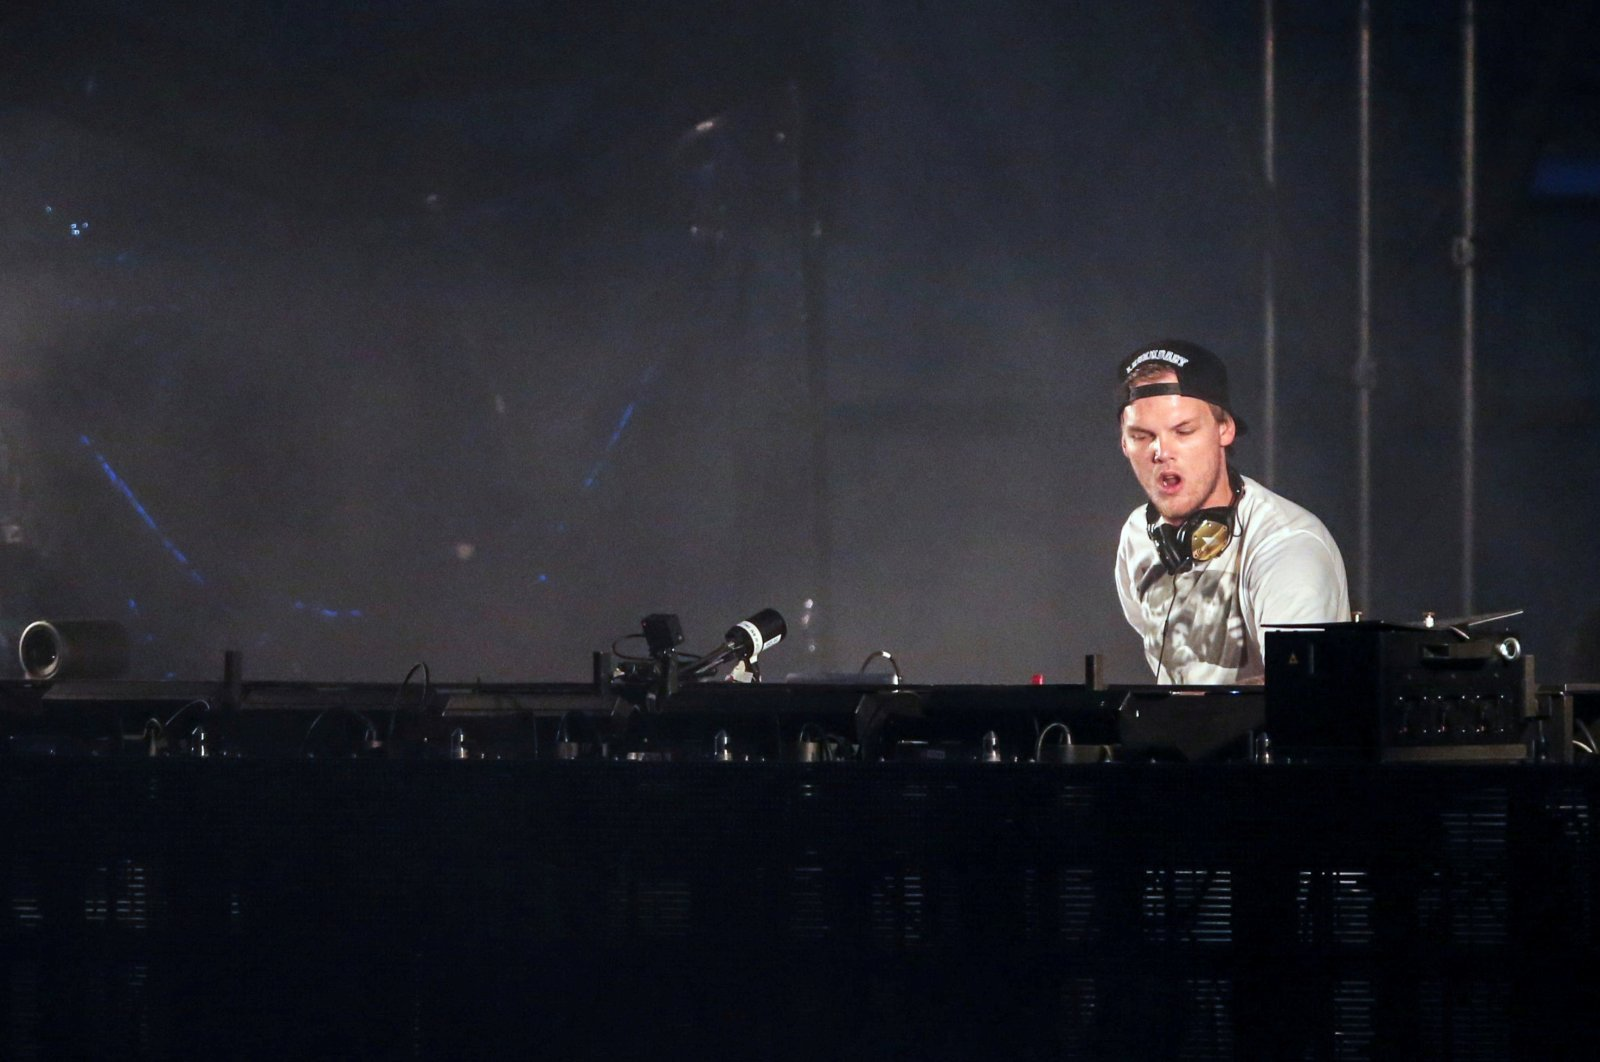 Swedish musician, DJ, remixer and record producer Avicii performs at the Summerburst music festival at Ullevi stadium in Gothenburg, Sweden May 30, 2015. (REUTERS Photo)